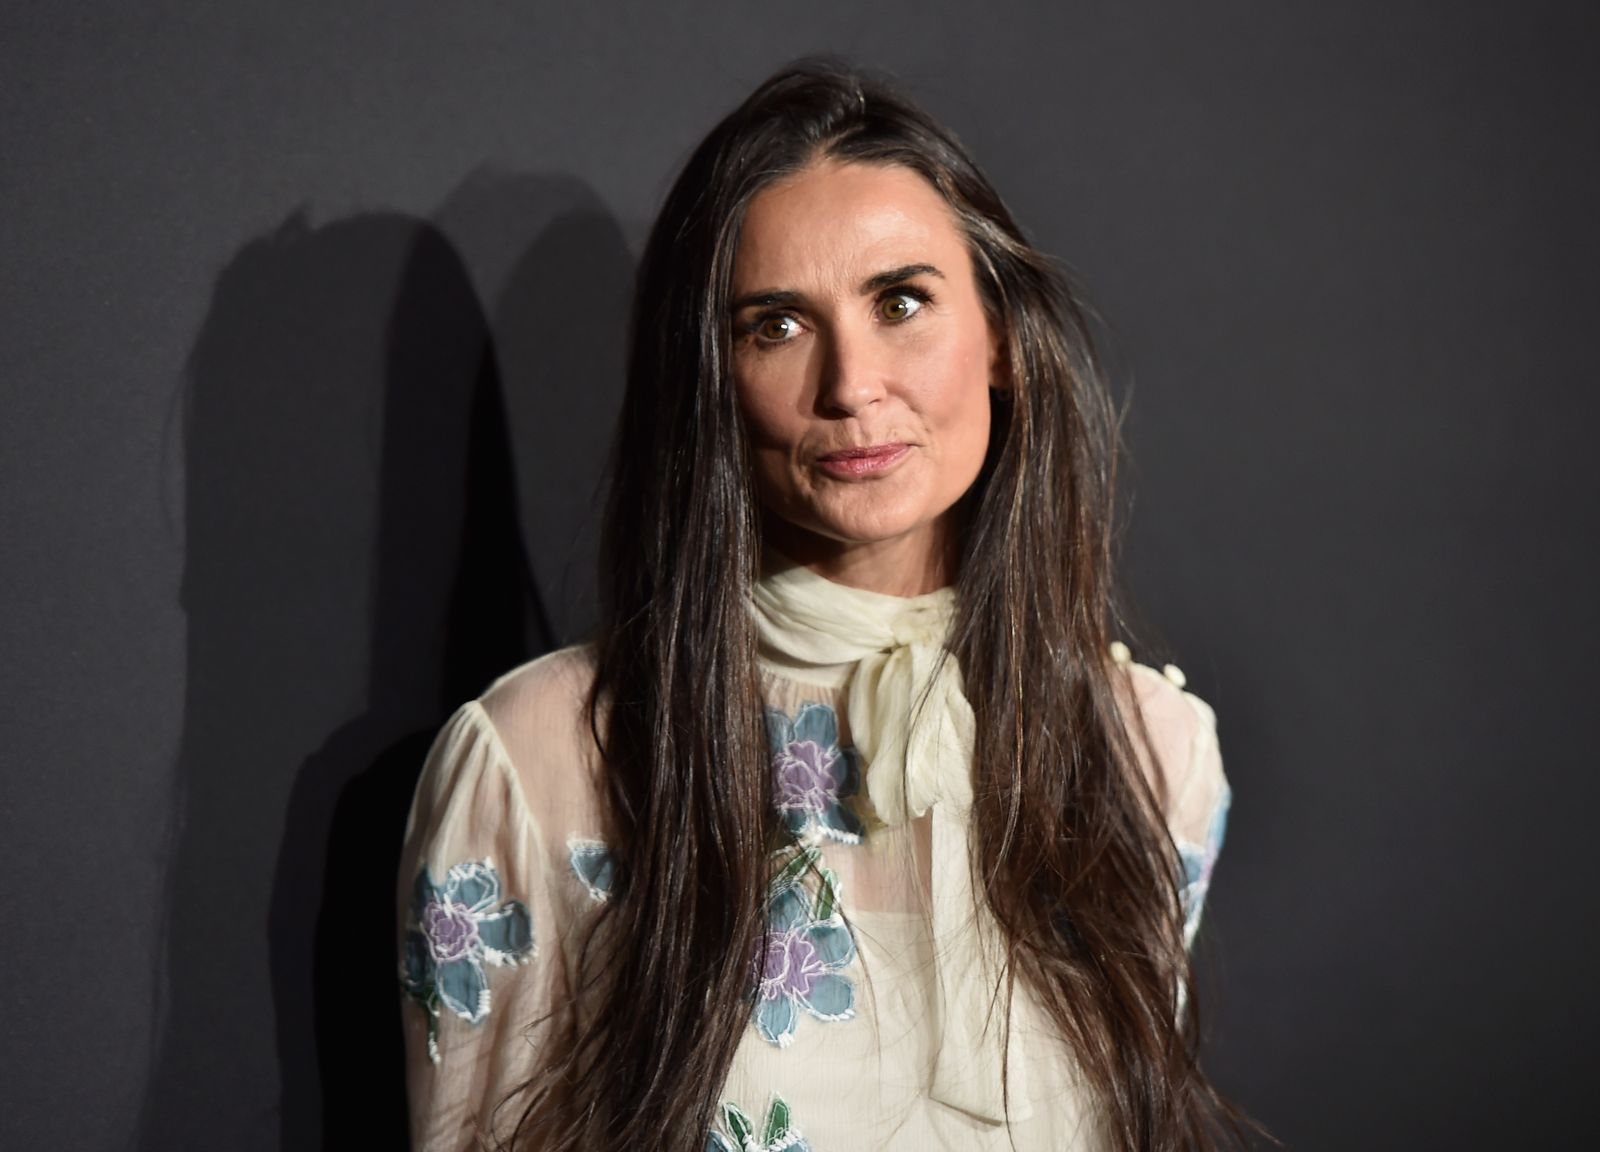 Demi Moore at Prada Presents 'Past Forward' premiere at Hauser Wirth & Schimmel on November 15, 2016 in Los Angeles, California. | Photo: Getty Images